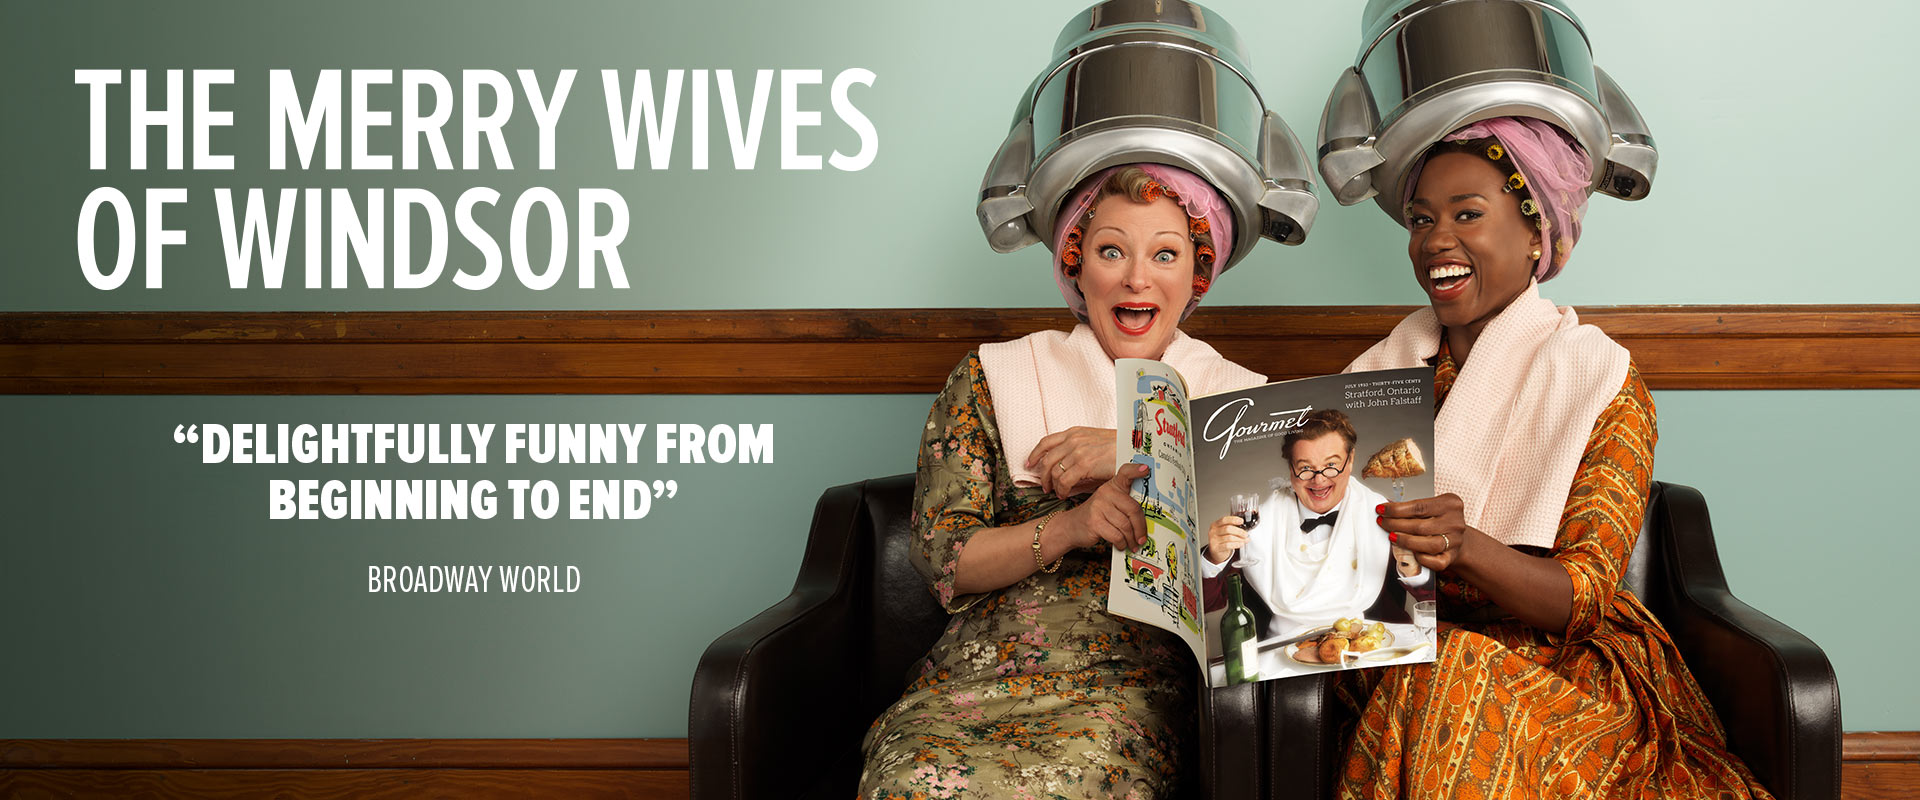 Publicity image from Merry Wives of Windsor